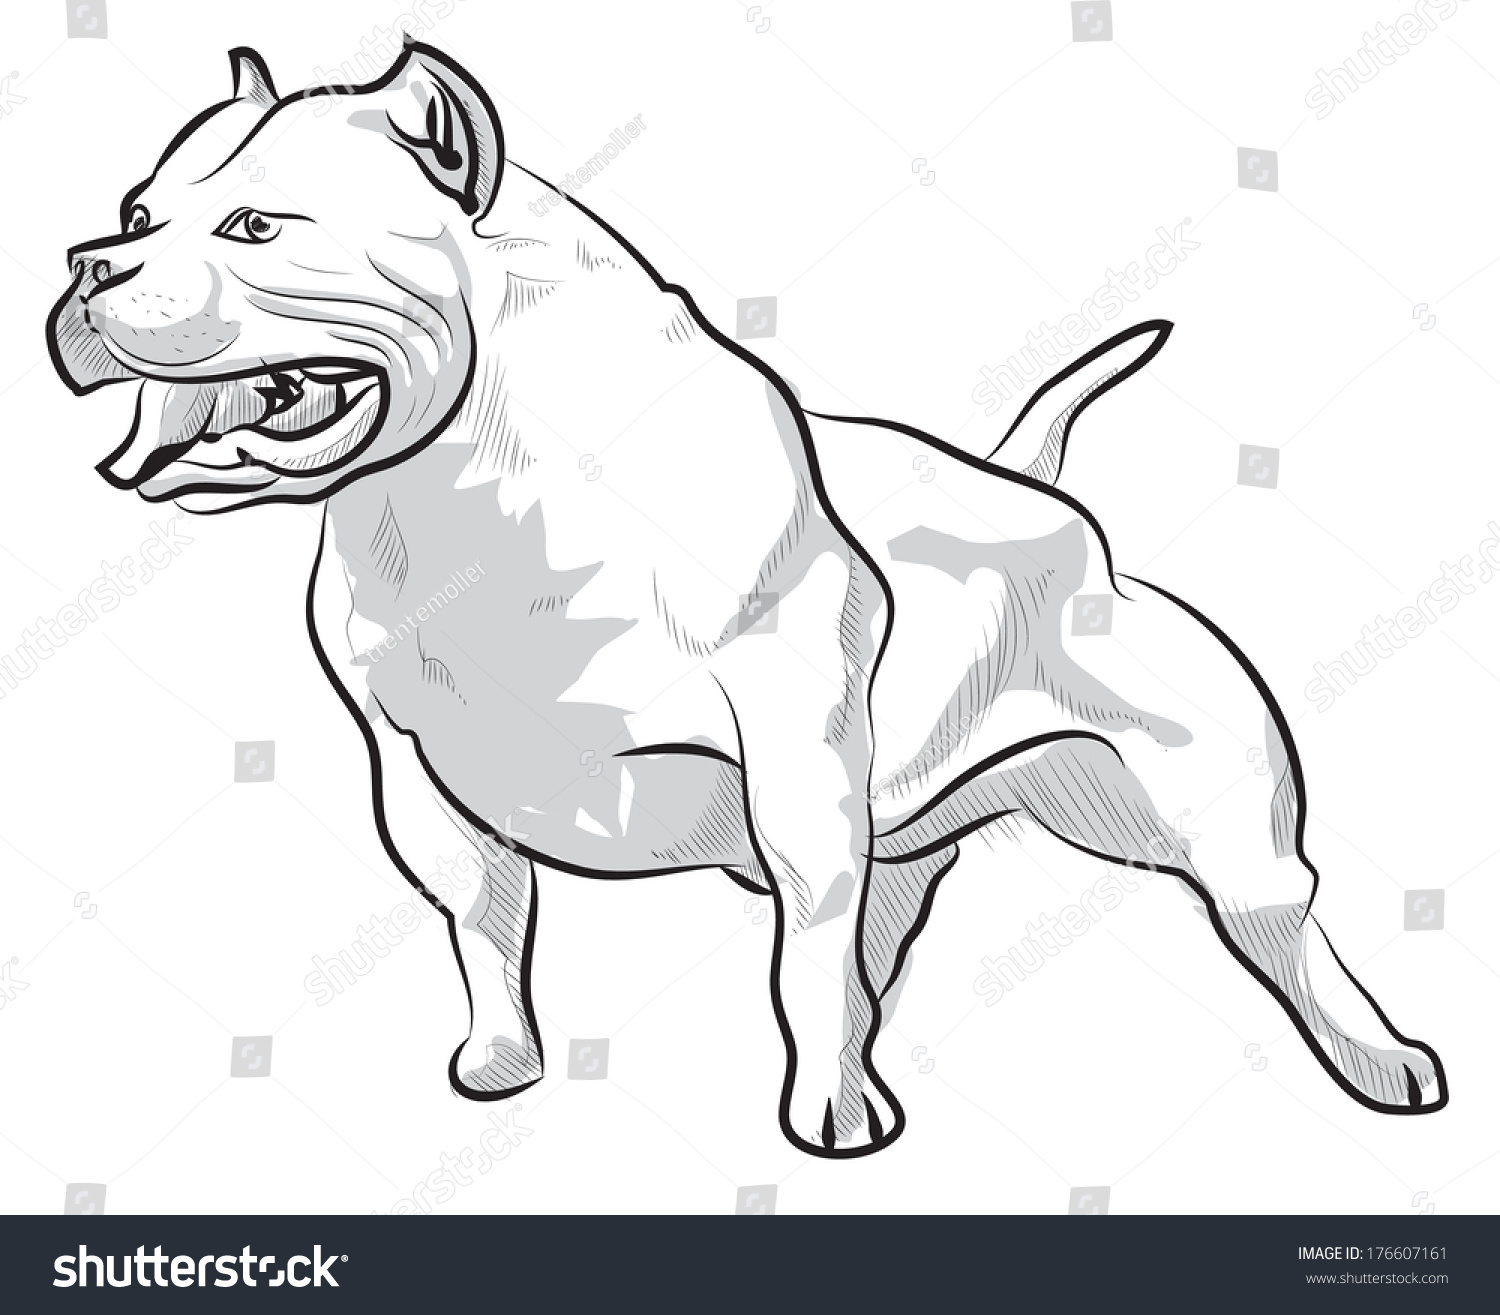 vector sketch drawing pitbull barking